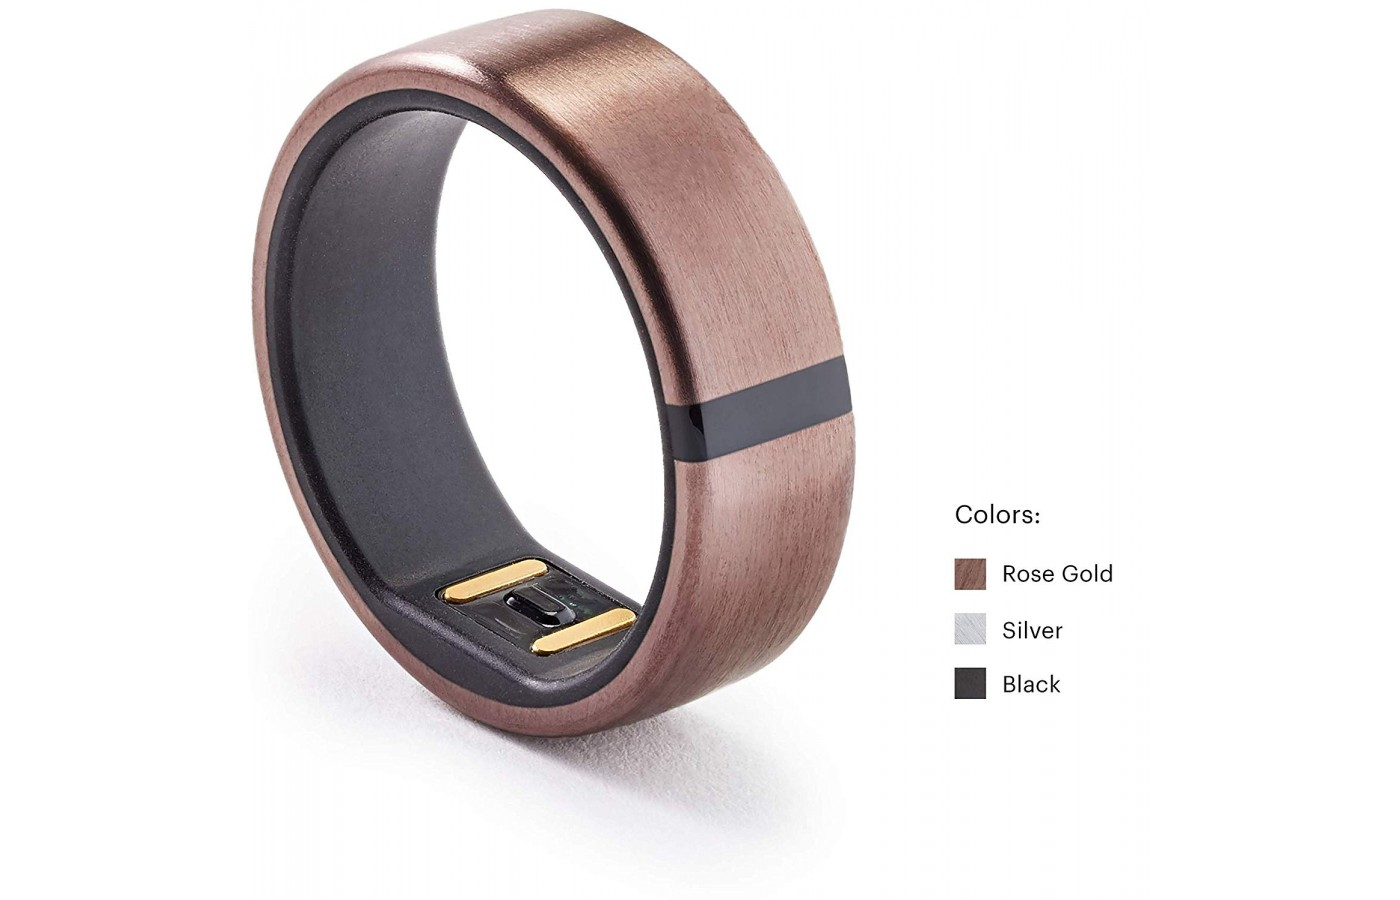 The Motiv Ring is available in a rose gold version.